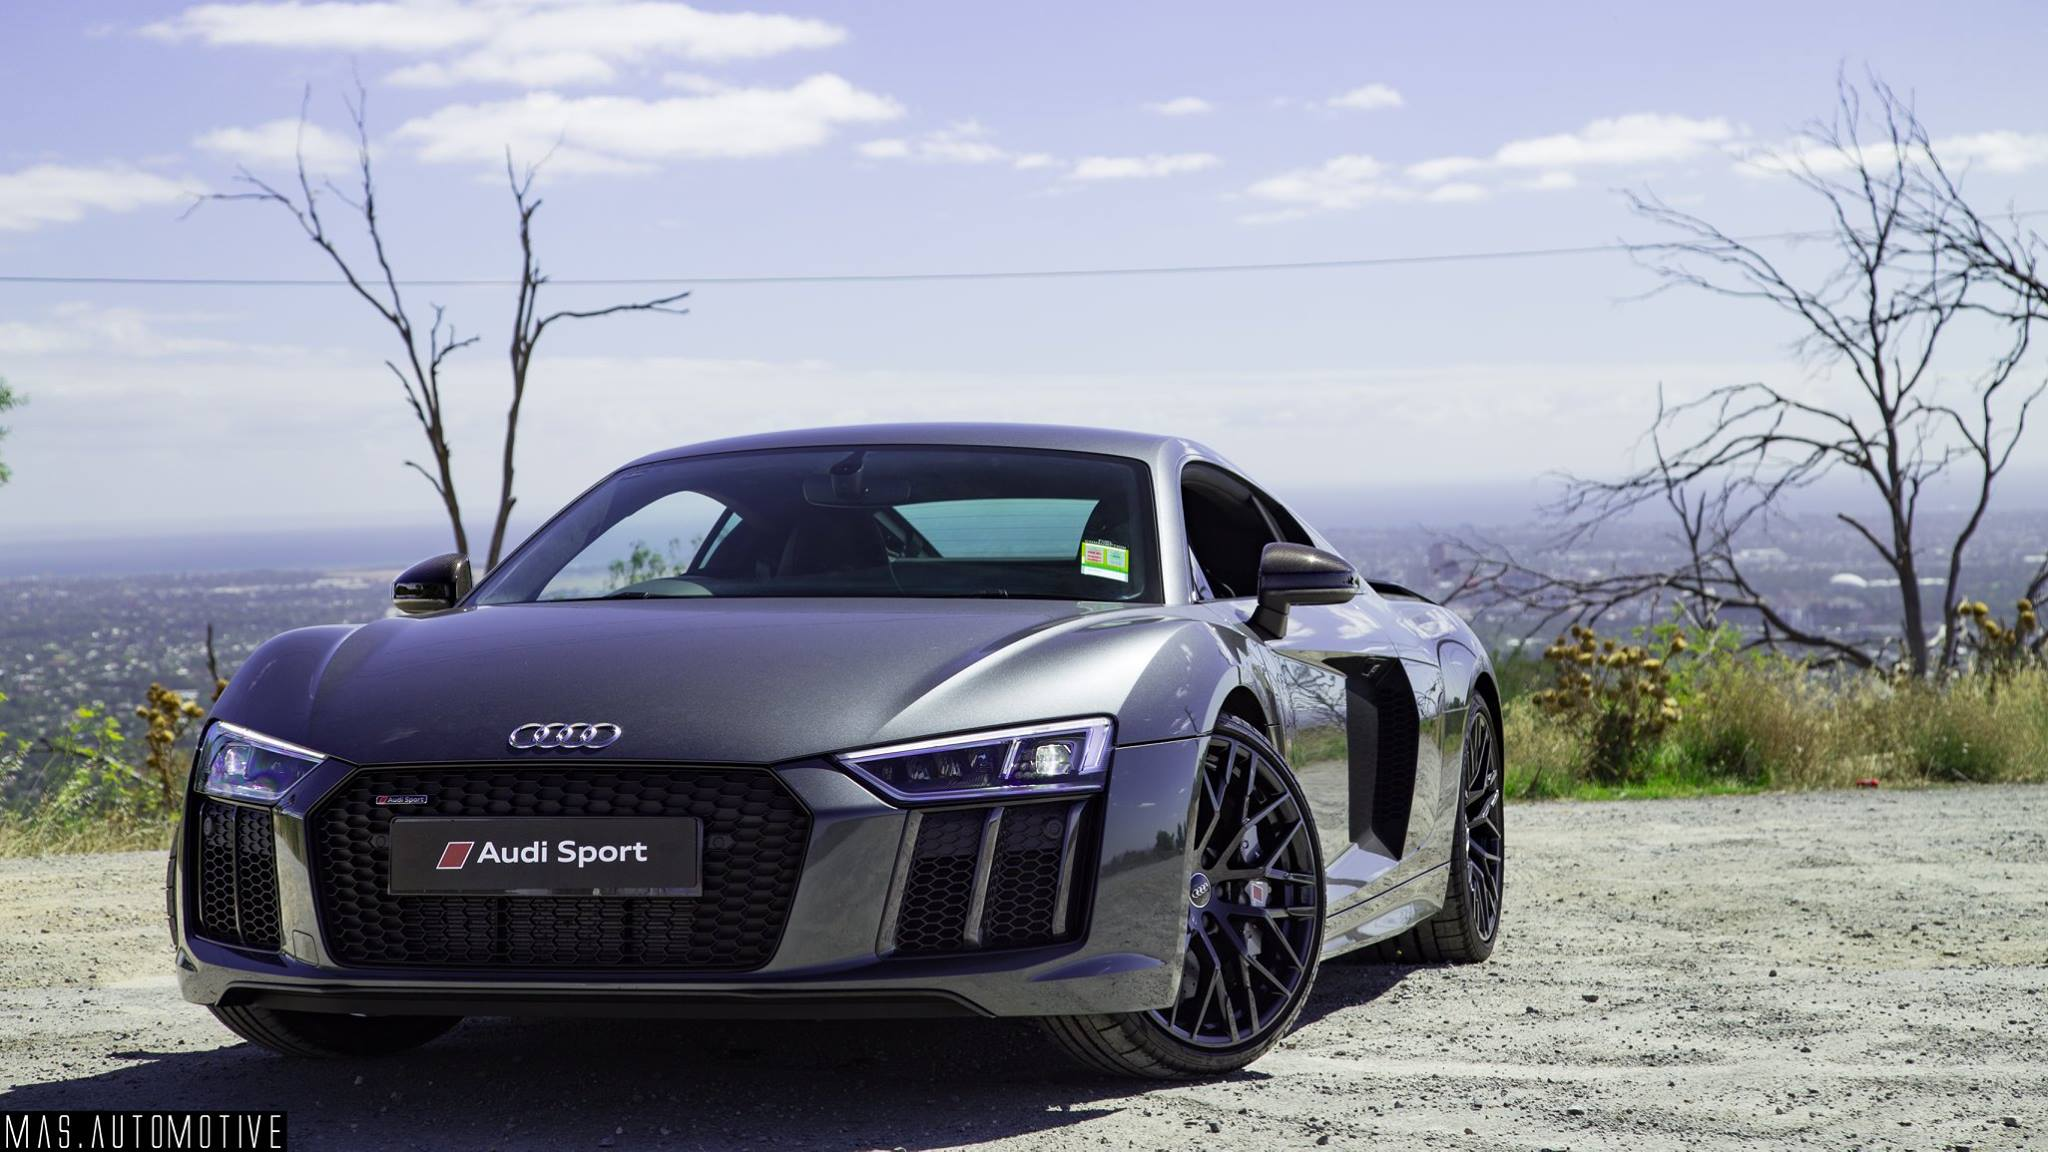 Performance Wise, Nothing Changes From The Standard V10 Plus R8 Which Is  Capable Of 602 Horsepower. The Car Has A 0 100km Time Of Just 3.2 Seconds  And A Top ...